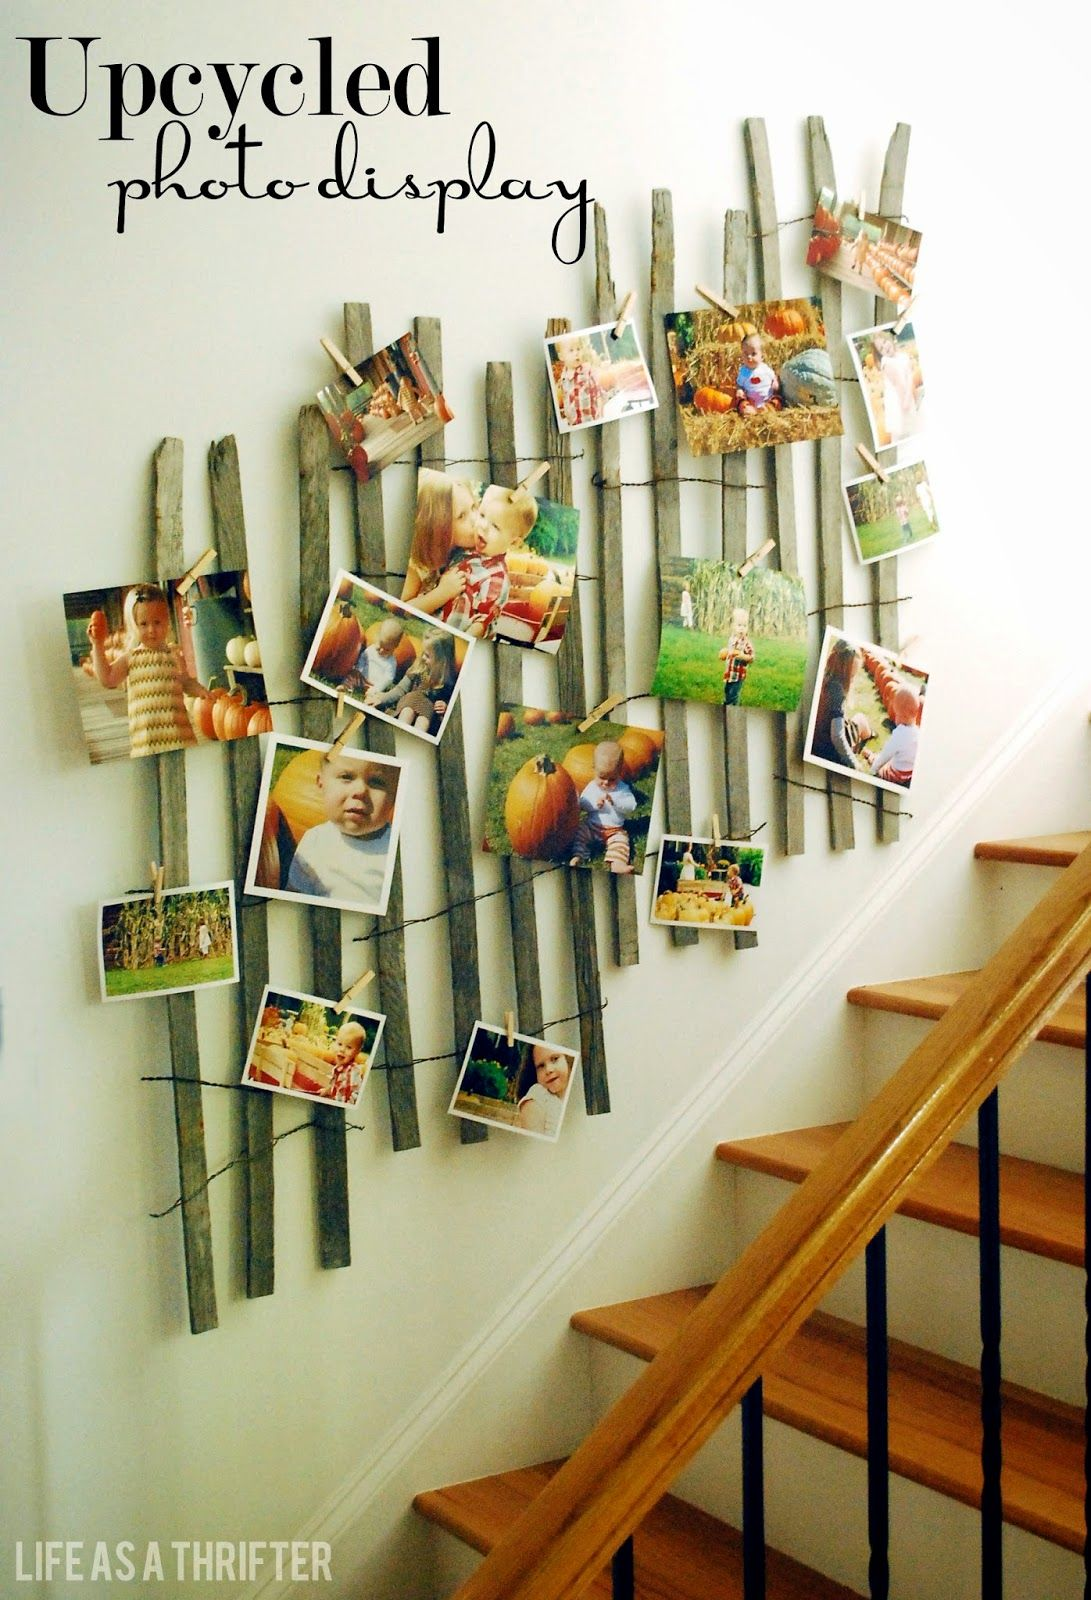 Life as a Thrifter: Upcycled Photo Display